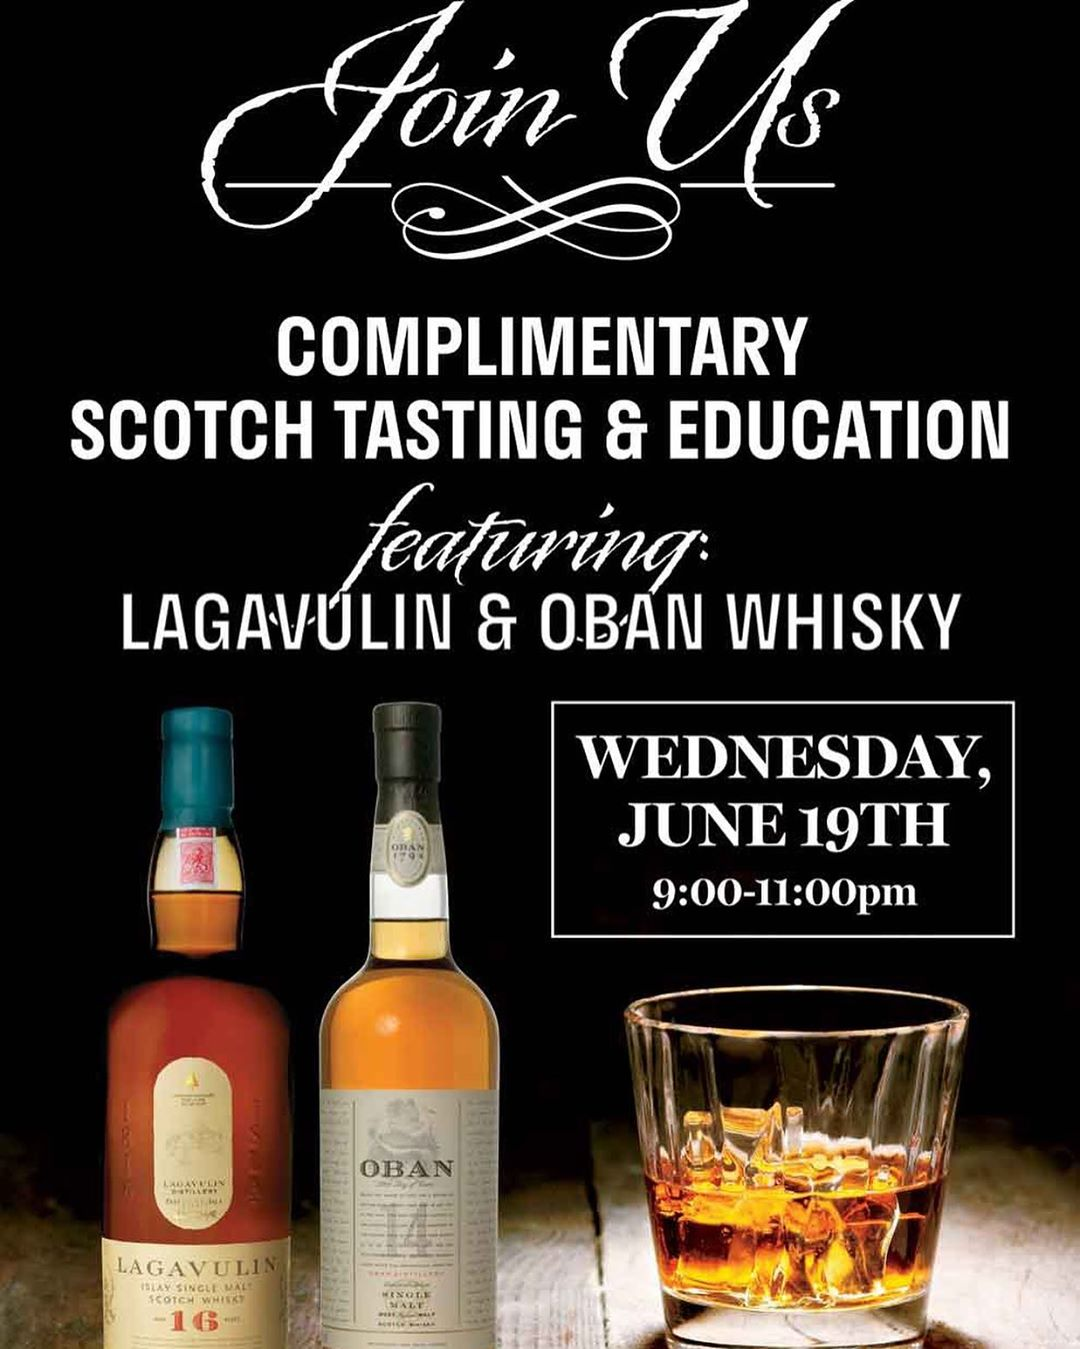 Join us tonight, Wednesday 19th, at Local Whiskey for a complimentary scotch tasting from 9-11 featuring @obanwhisky and Lagavulin! We will be hosting a scotch whisky ambassador who will be going table to table to speak on the unique, and very distinct sc